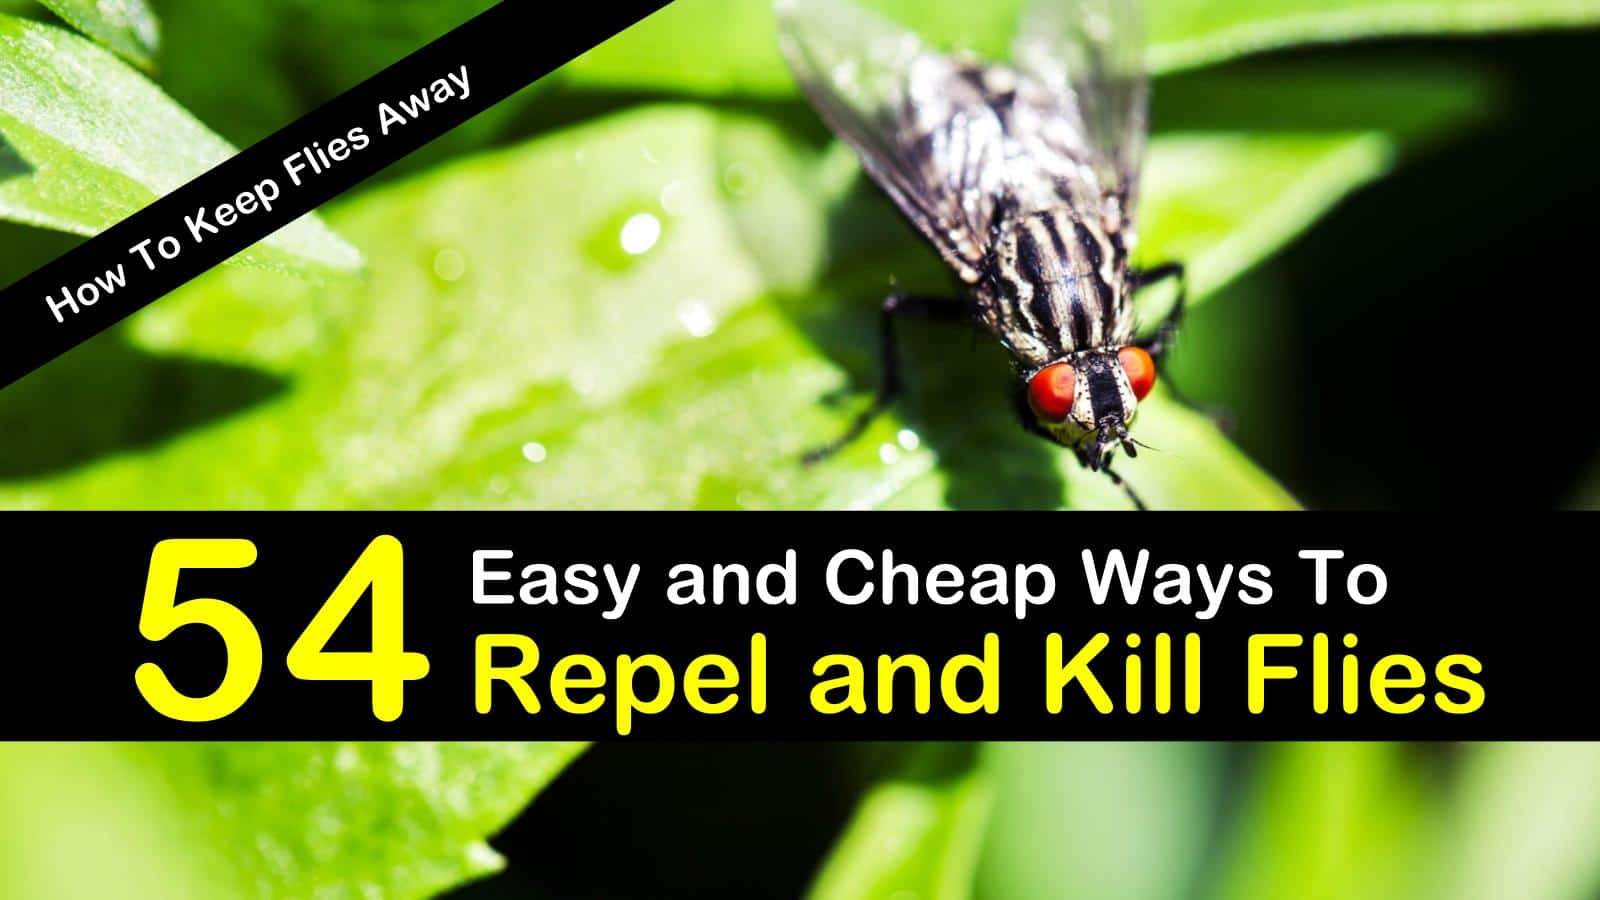 Home remedy to get rid of flies in the house